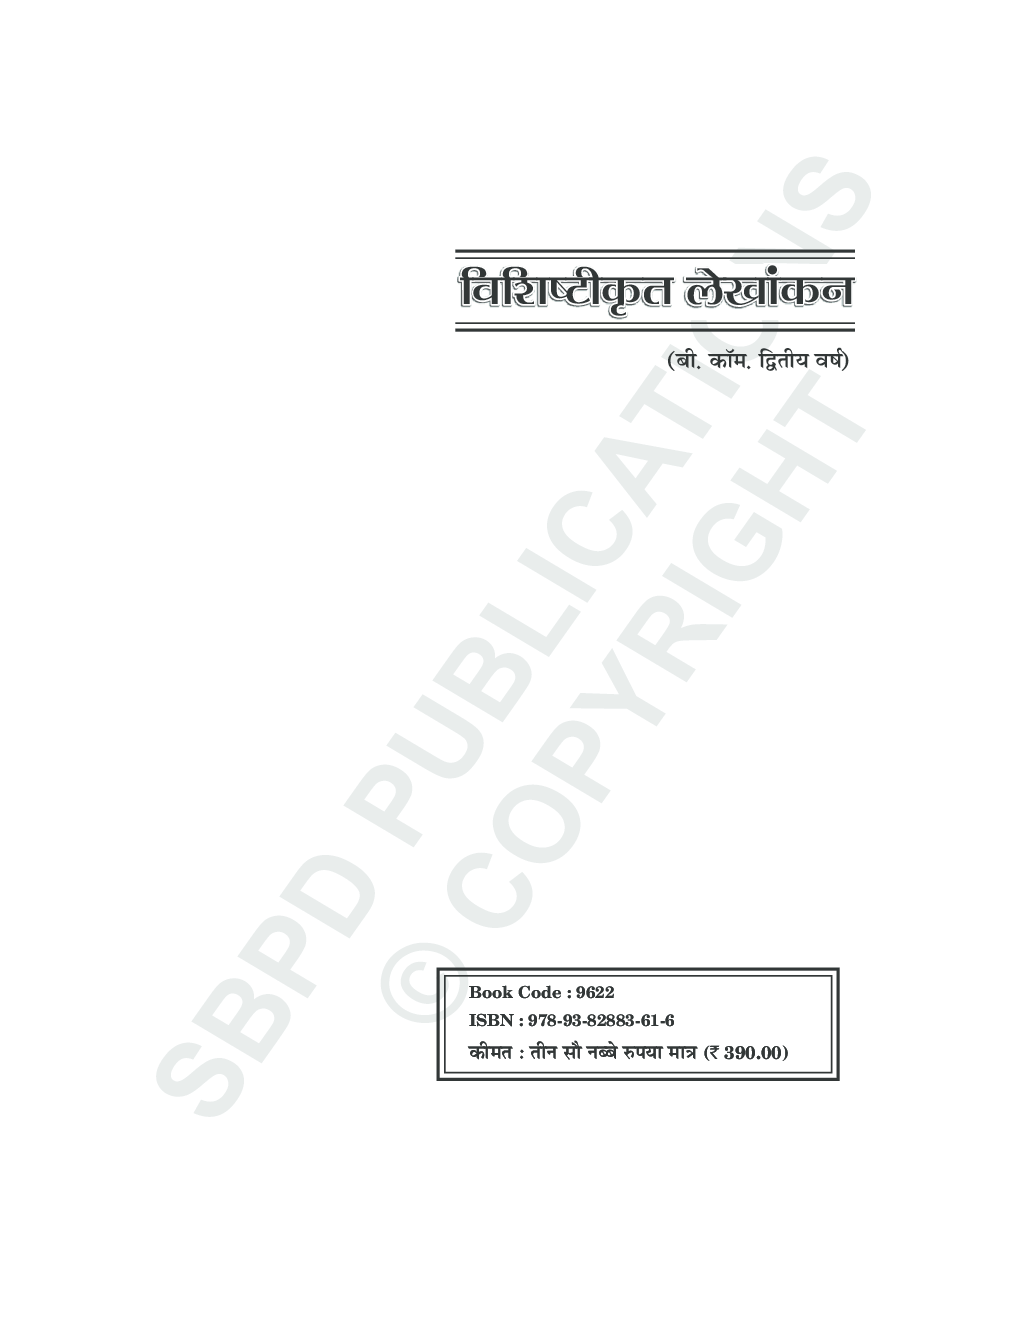 Specialised Accounting Hindi Language - Page 2